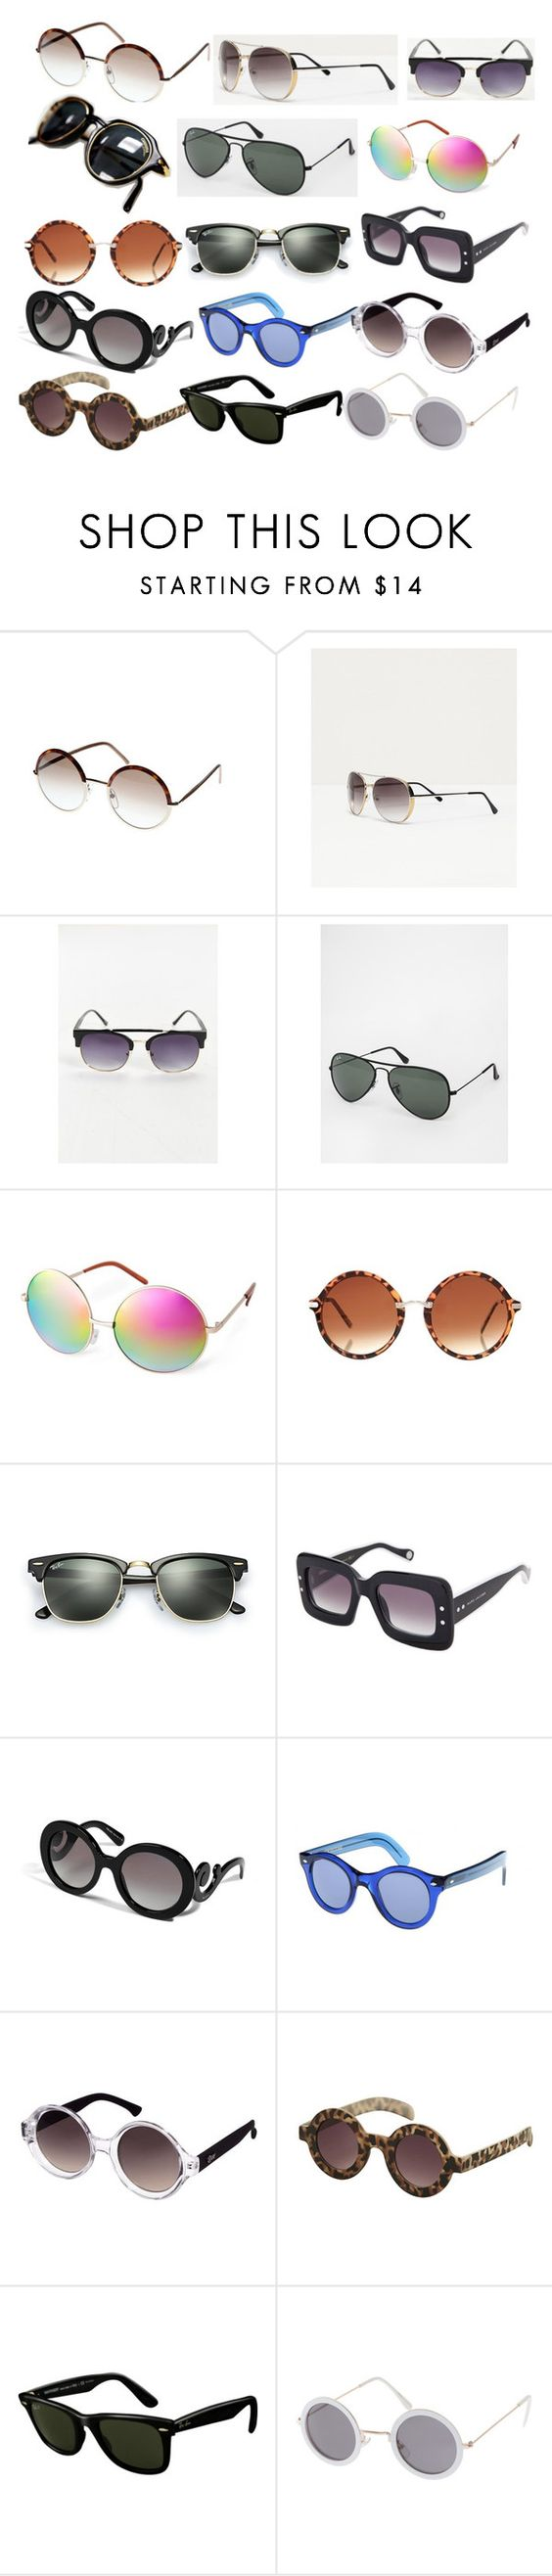 """Sunglasses Masterpost"" by perrieanddaniellestyle ❤ liked on Polyvore featuring Zara, Carrera, Ray-Ban, ASOS, Marc Jacobs, Prada, Quay and Topshop"